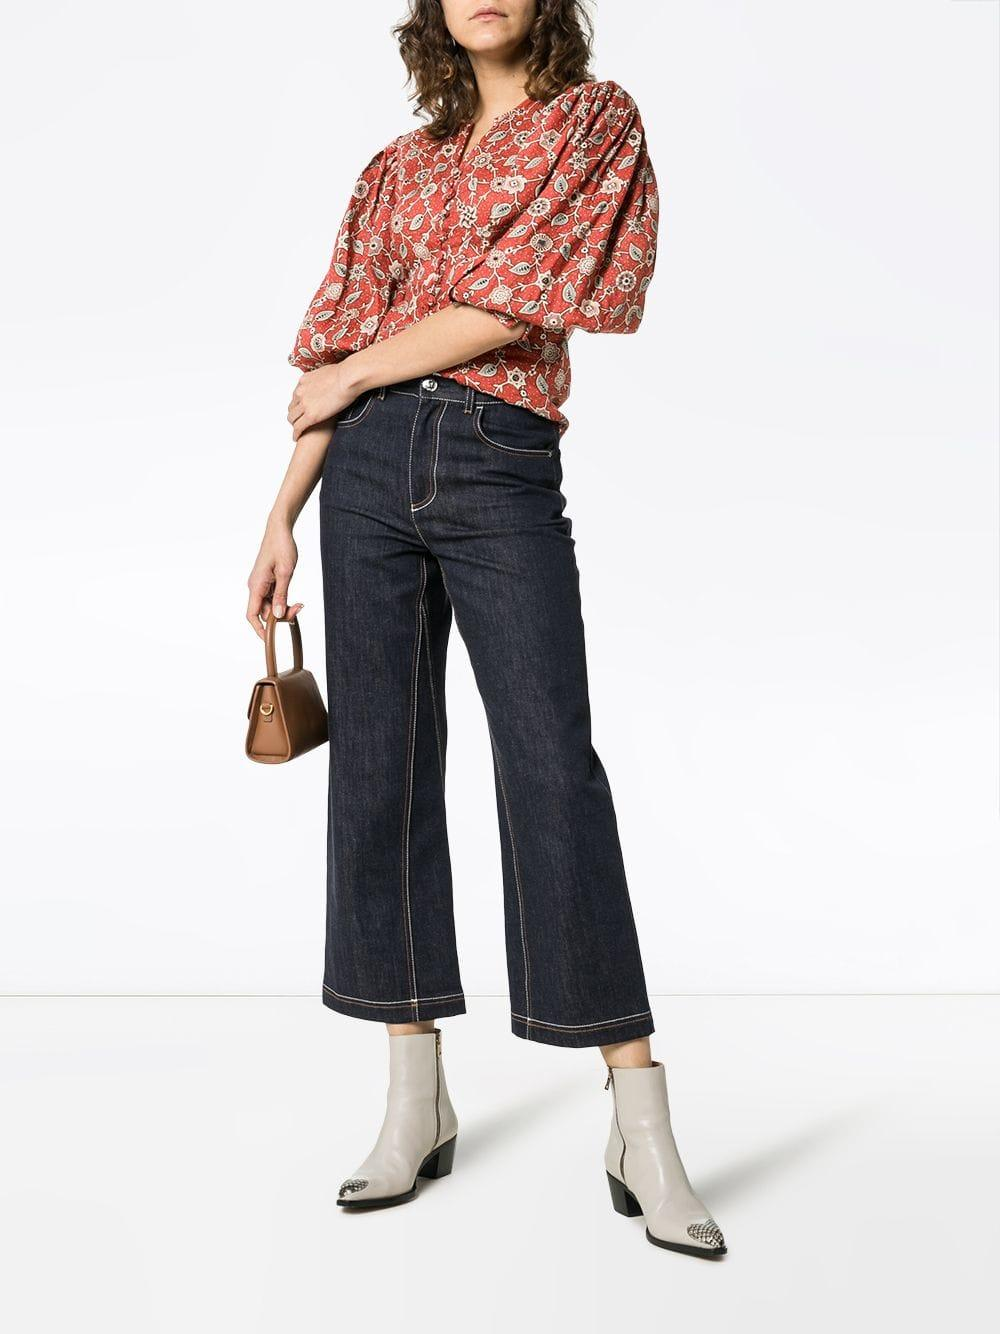 103fd55c46e03 Étoile Isabel Marant Paisley And Floral Print Linen Blouse in Red - Lyst